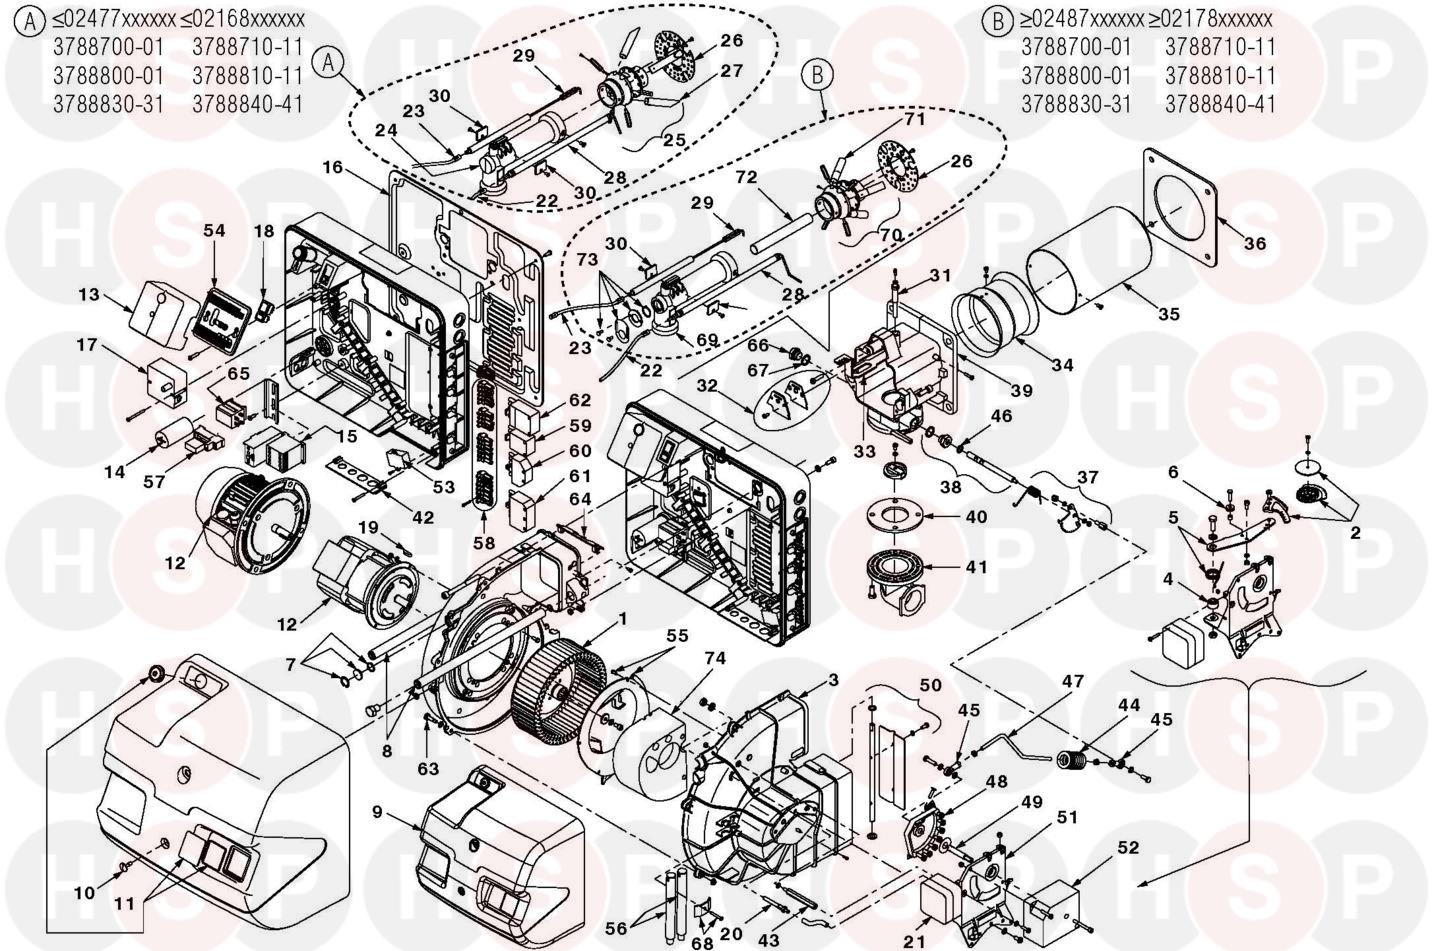 Minute Mount Wiring Diagram 99 Ford likewise Fisher Minute Mount 1 Wiring Diagram besides Rockford   Wire Diagrams furthermore Western Plow Wiring Diagram together with Trail King Wiring Diagram. on boss plow wiring harness diagram